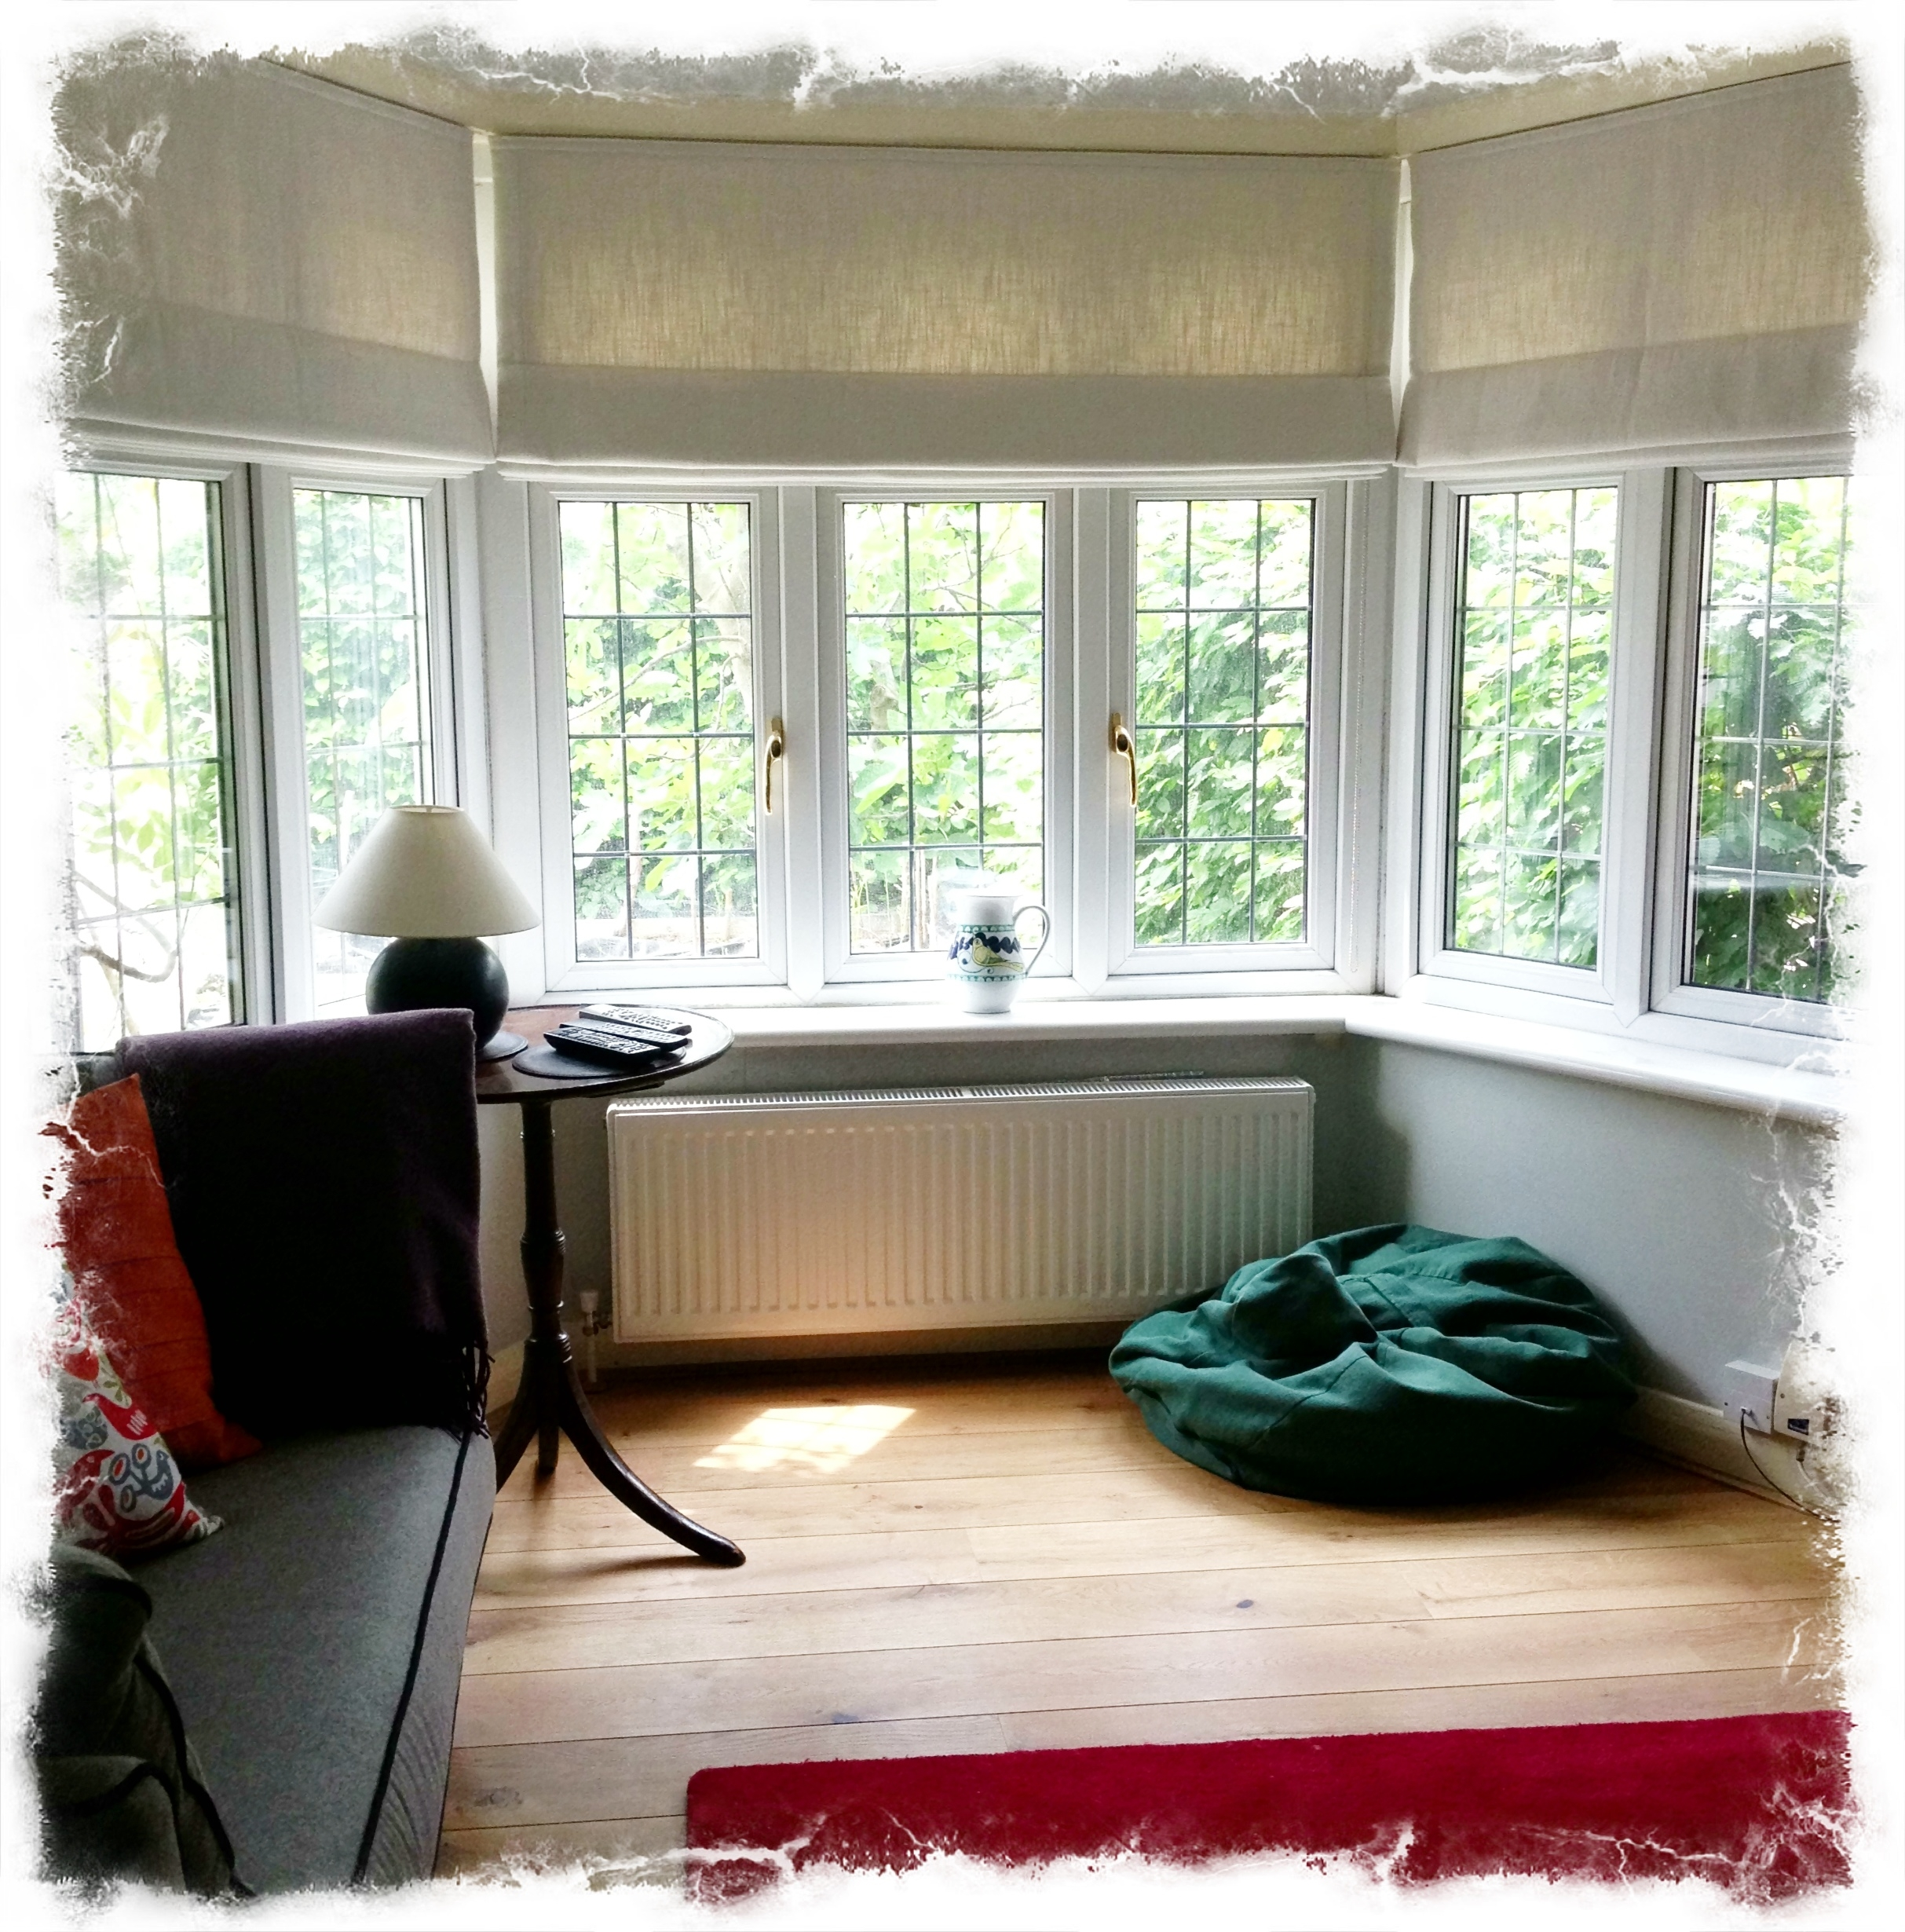 Lined And Interlined Roman Blinds For A Bay Window Made Www In Roman Blinds On Bay Windows (Image 8 of 15)